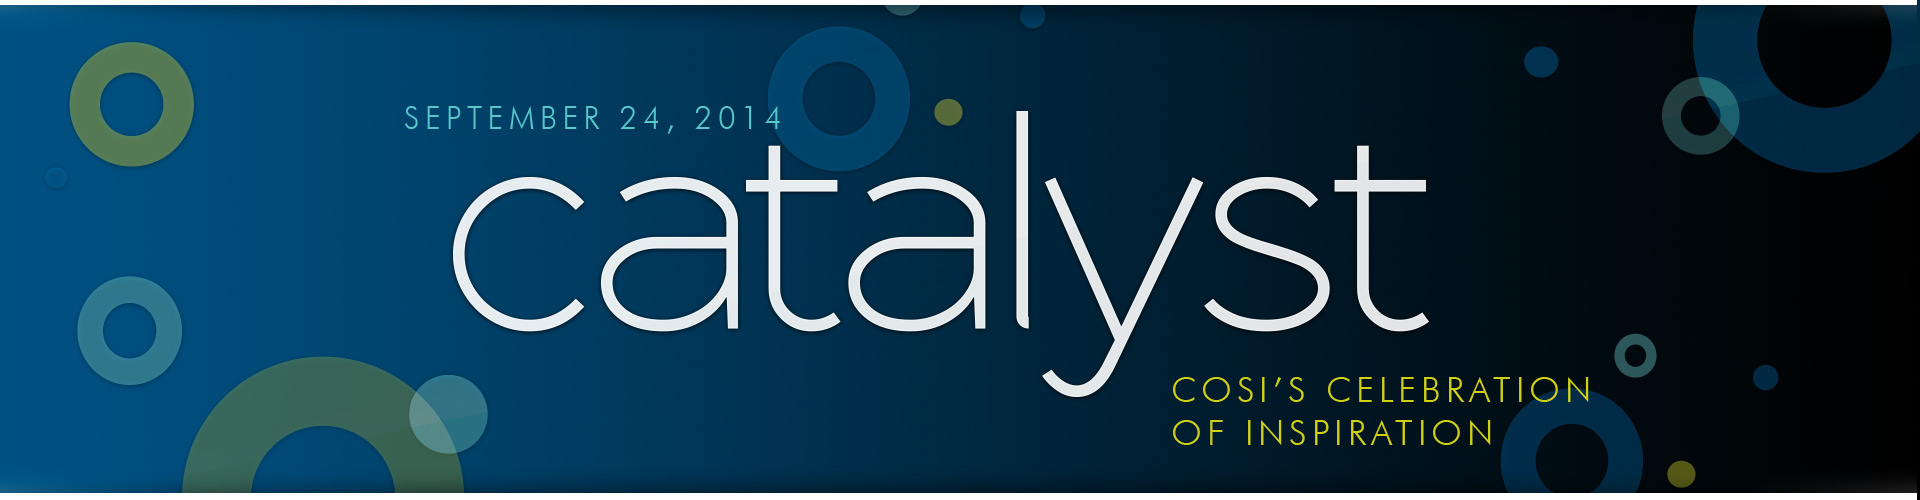 COSI's Catalyst Event Logo